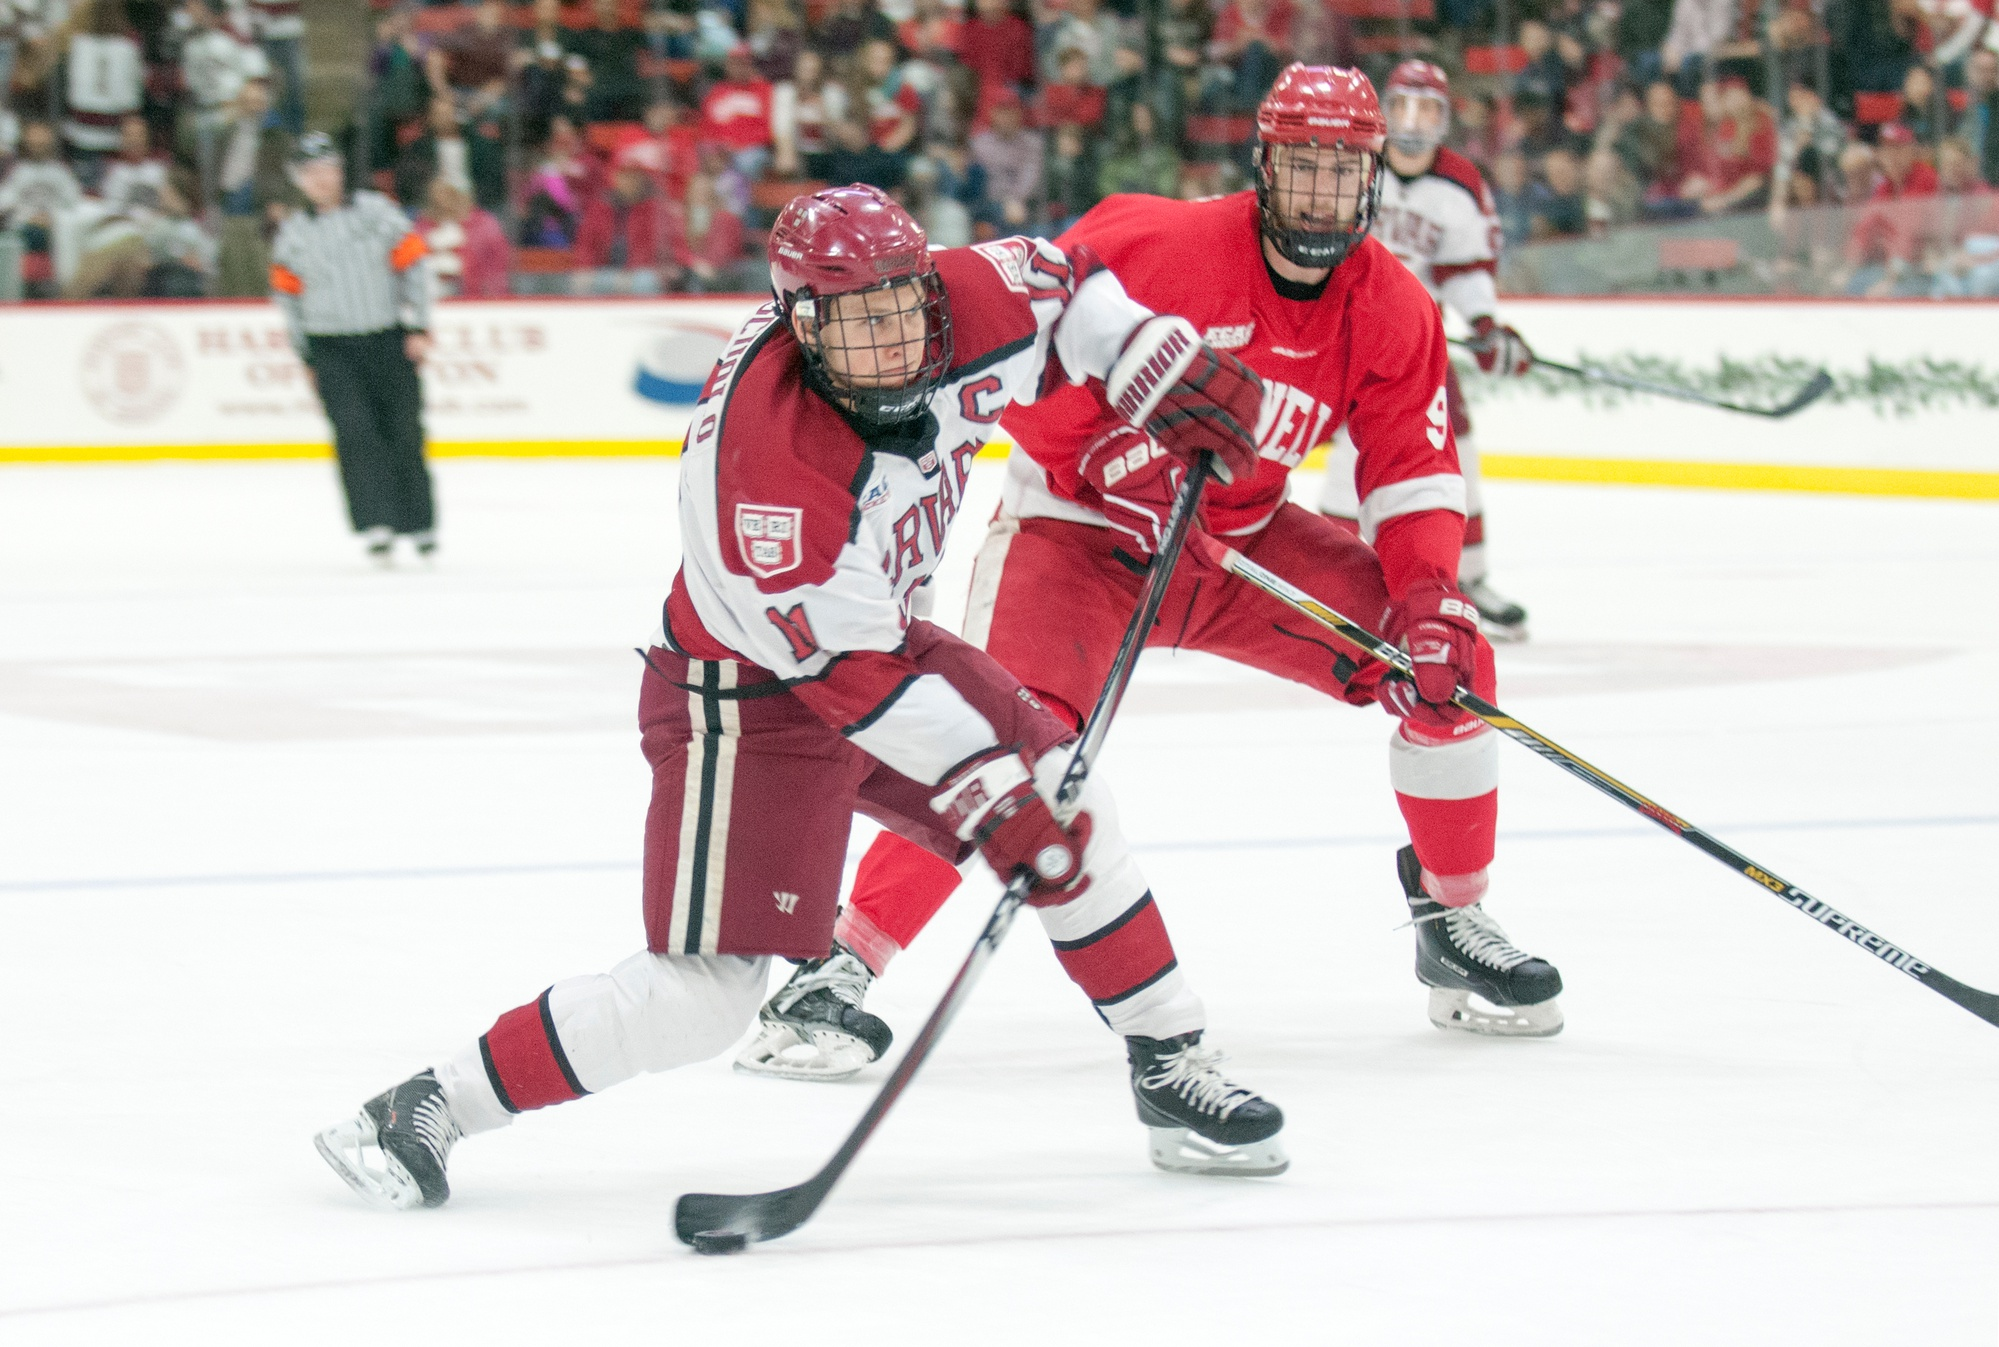 Junior co-captain Kyle Criscuolo scored in the second period of Harvard's 3-3 tie against Cornell.